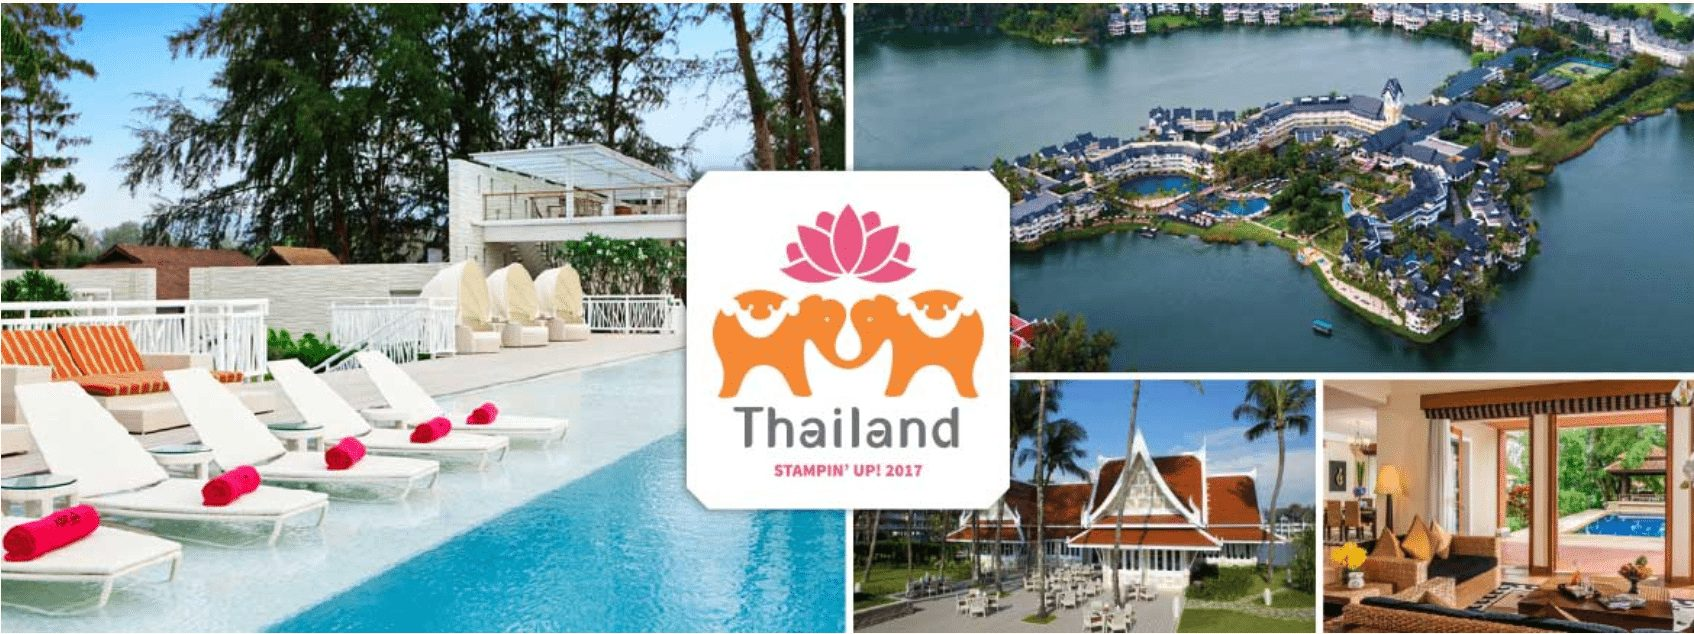 thailand 2017 Stampin up incentive trip